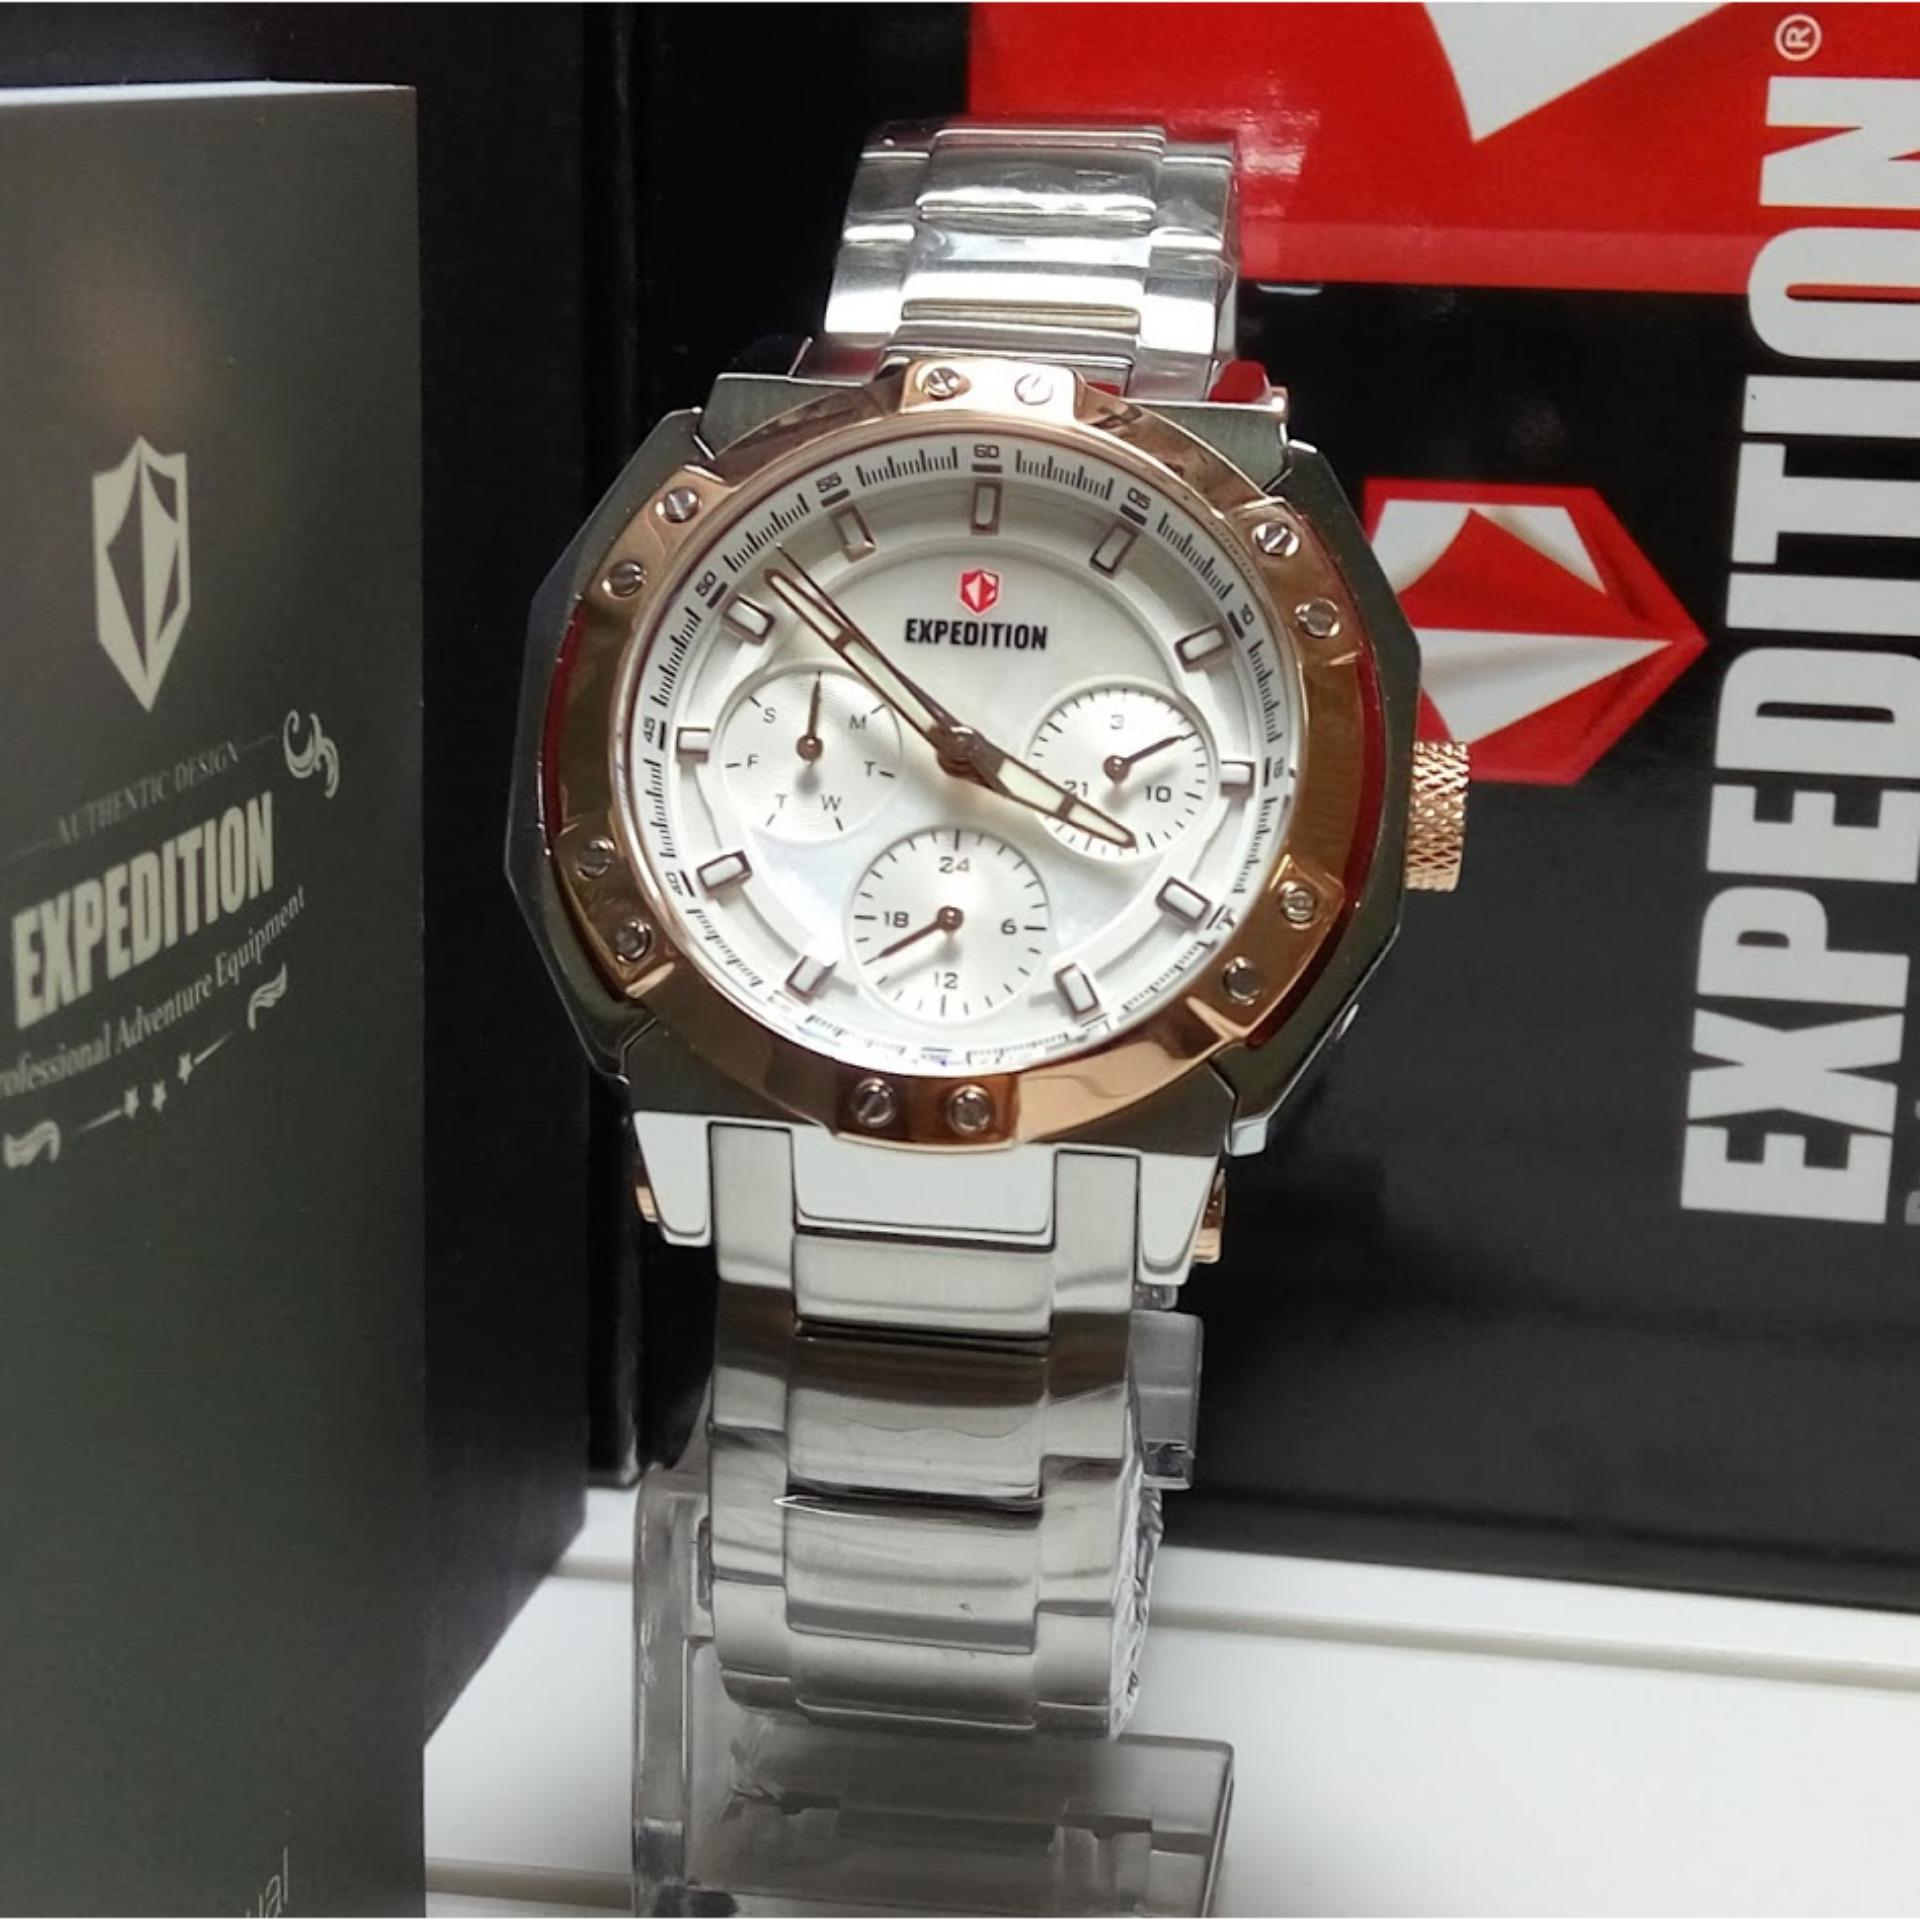 Expedition Jam Tangan Pria E6706mt Triple Time Black E6318m Rose Gold Dark Brown Wanita E6385b Multifunction Silver Stainless Steel